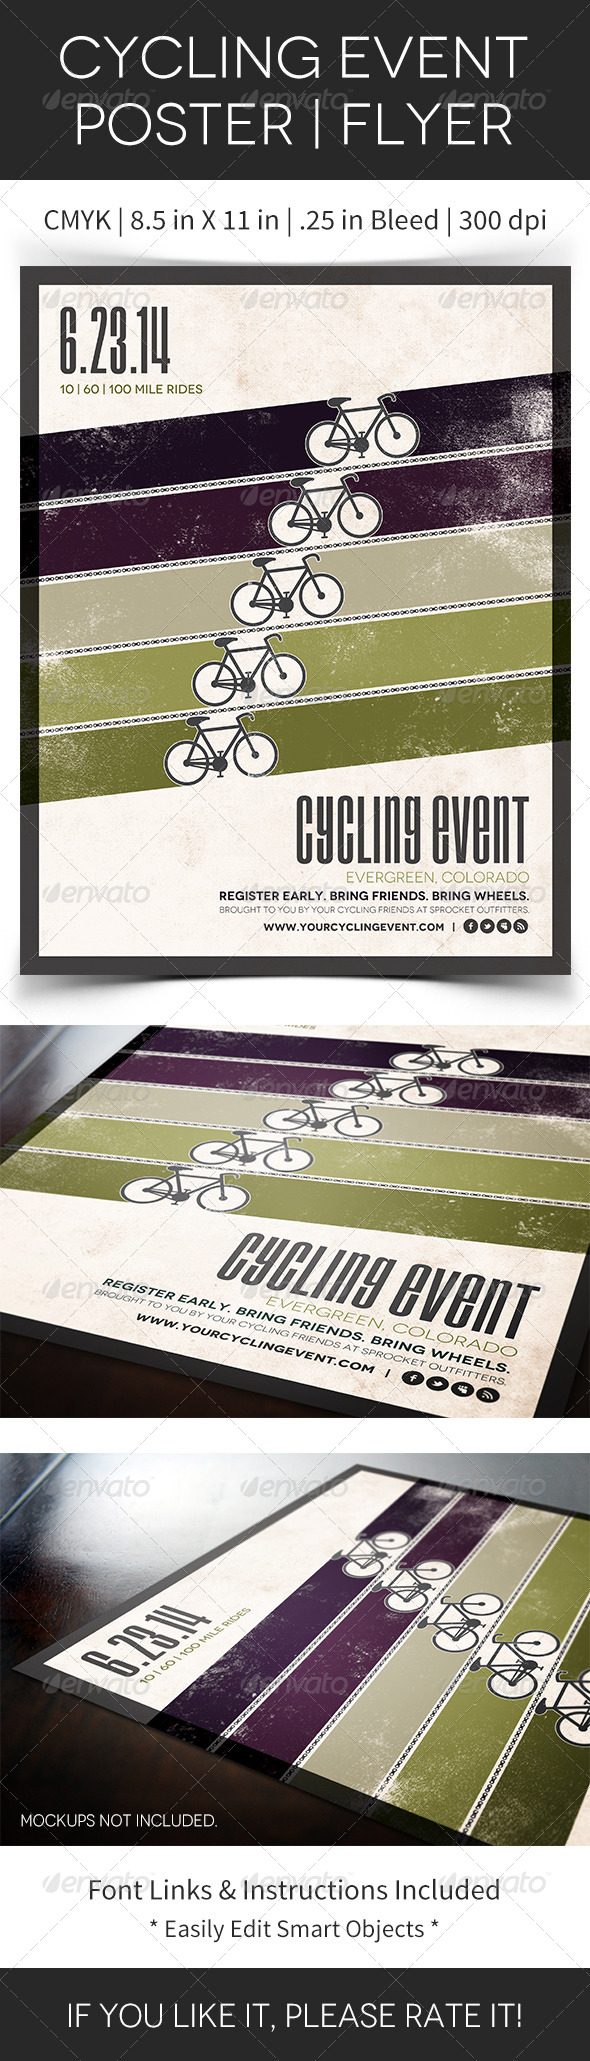 GraphicRiver Cycling Event Poster Flyer 5070041